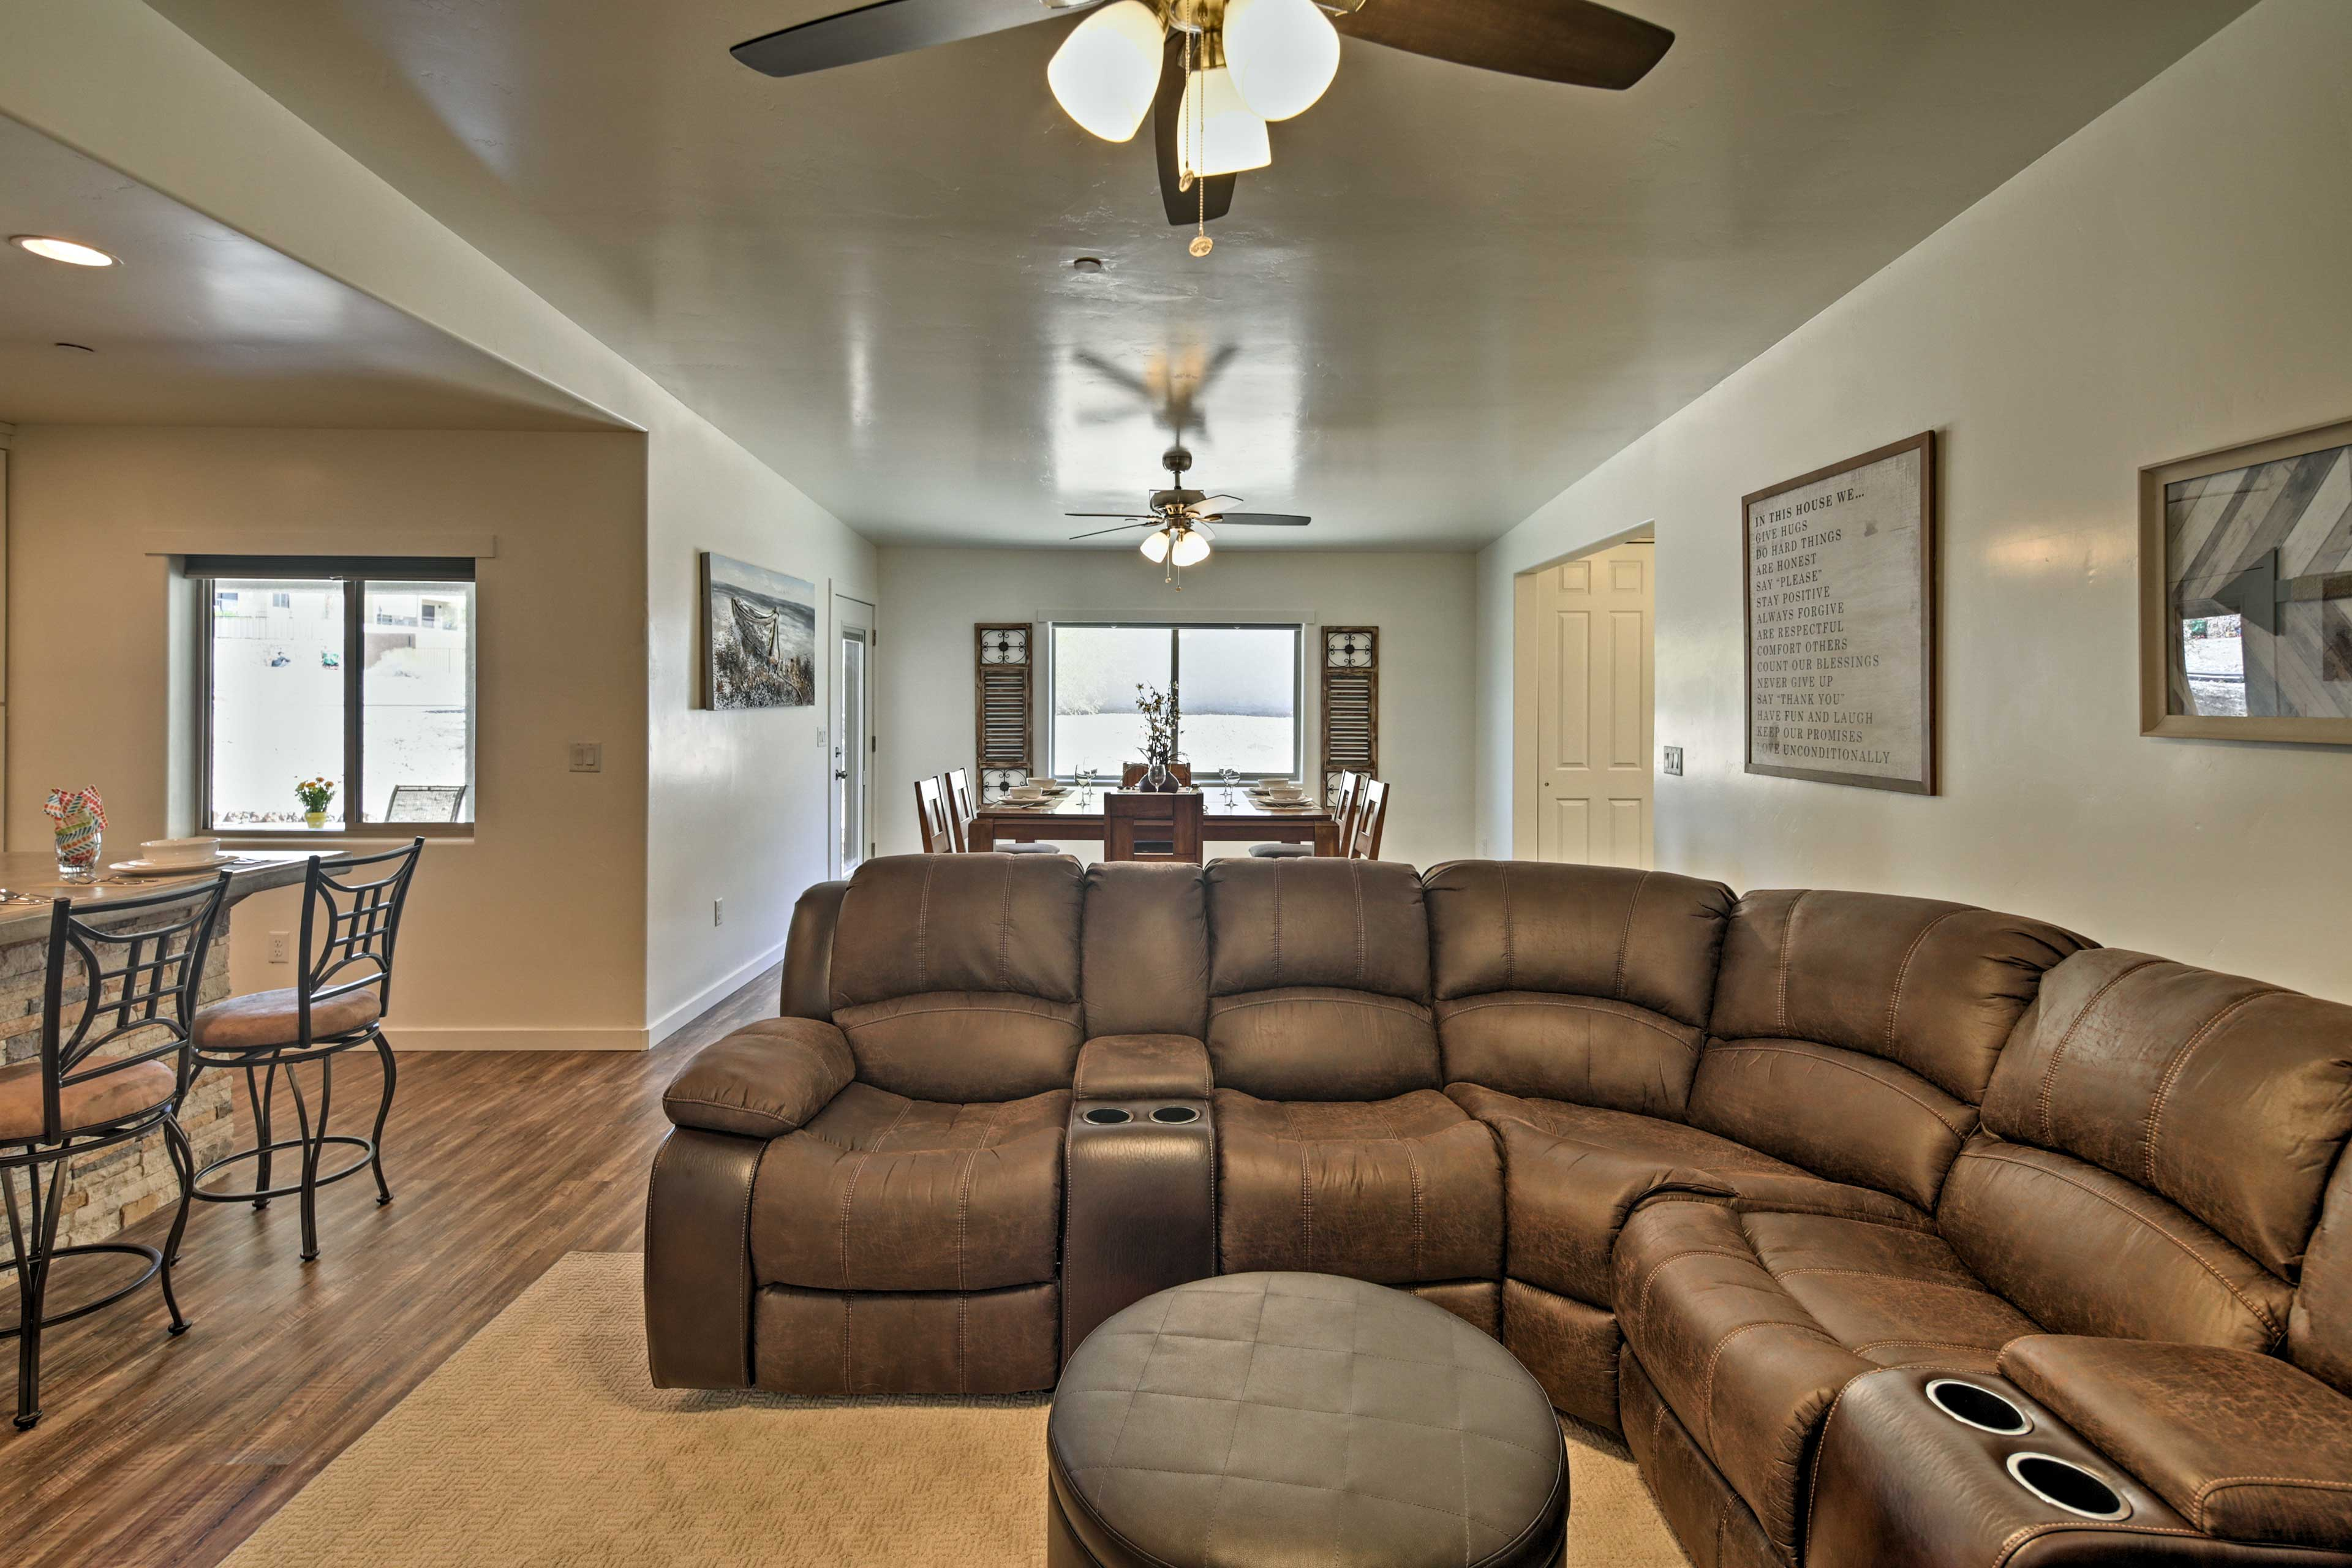 Brand new furnishings can be found throughout the entire home!